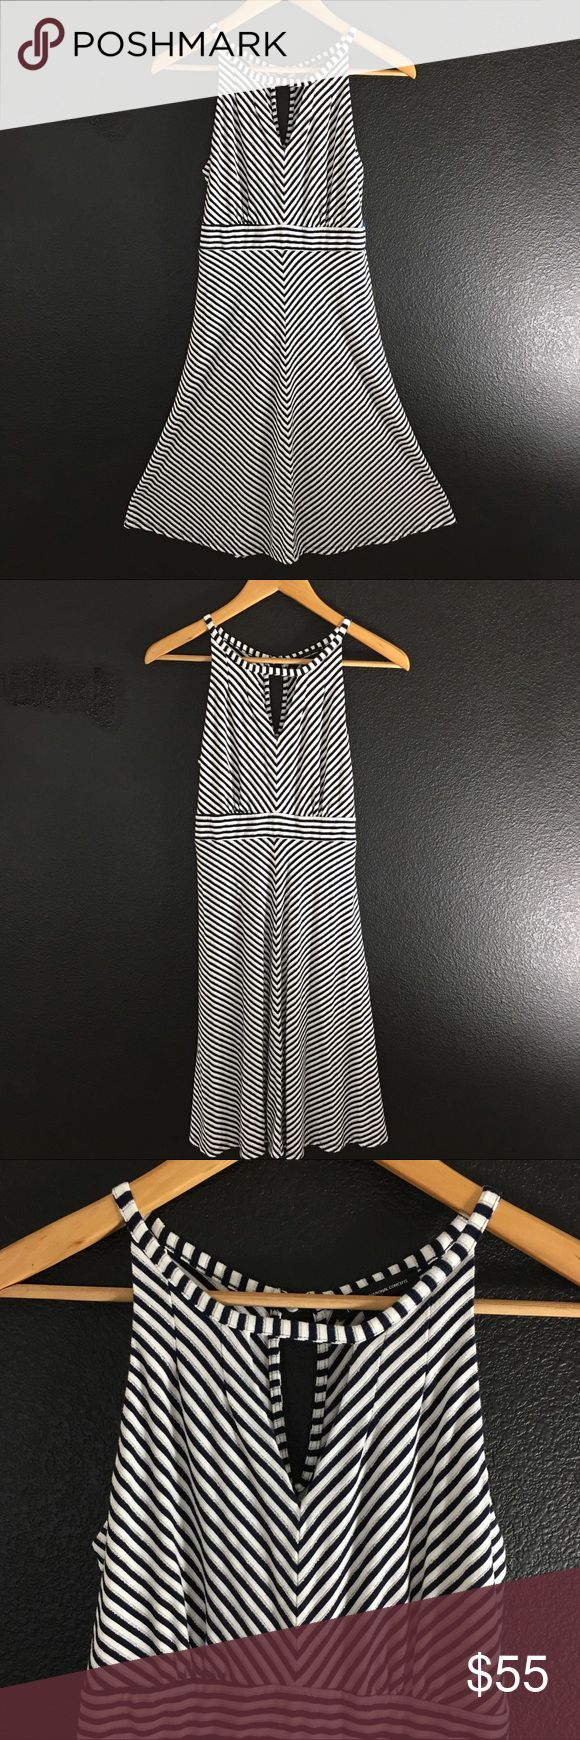 "Classic Keyhole Halter Midi Striped INC Dress S Feel your best, Elegant and Smart in this Classic Keyhole Halter Stripe Dress by INC. This Soft Dress is  perfect for Weddings, Sailing, Vacation, Summer Dates, and a plain o'l Summer day where you want to get a little dressy. White, Navy, & Silver Metallic Stripes Size Small  90% Rayon 5% Spandex 5% Other (Stated on the Tag) Made in Republic of Korea Bust: 30"" Waist: 24"" Hip: 31"" Shoulder to Hem: 37""  Thank you for shopping! INC International…"